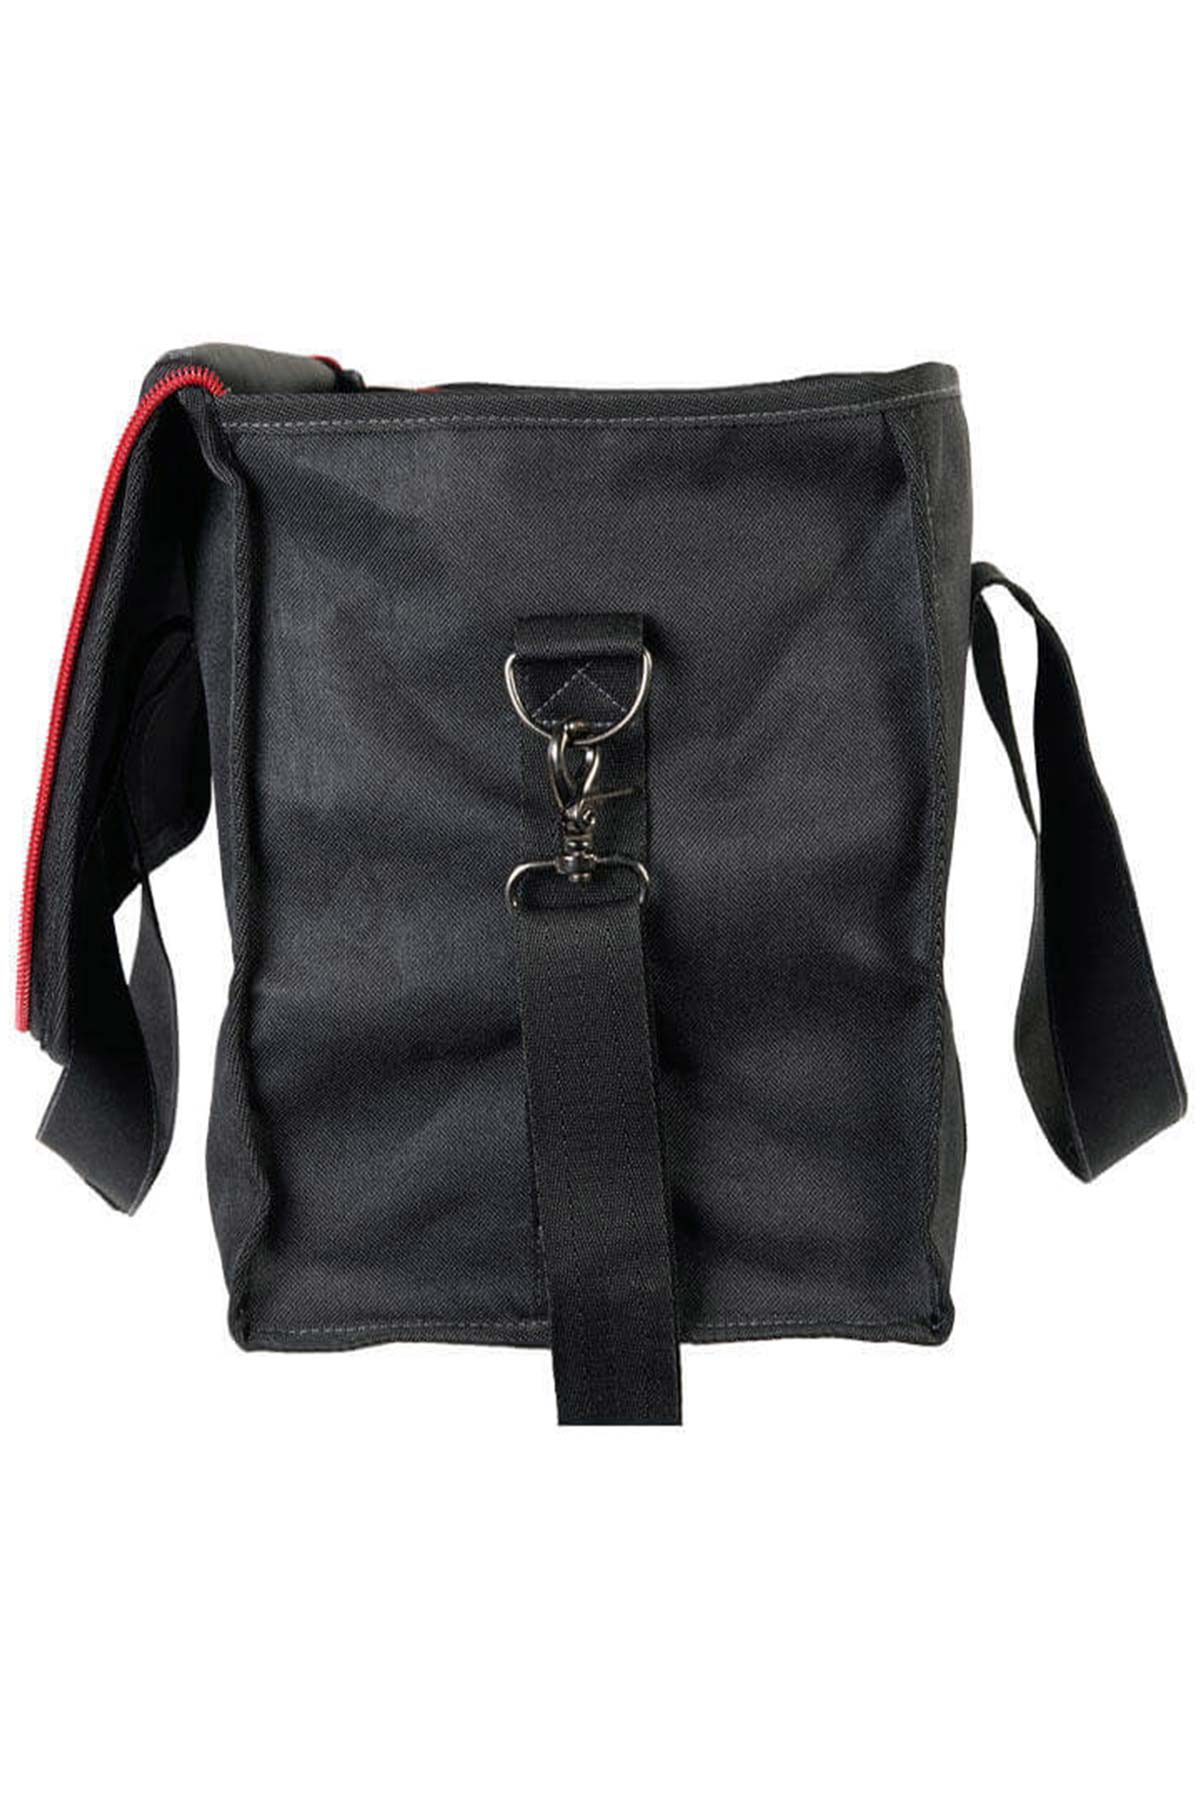 Mr. Serious 12 PACK Shoulder Bag